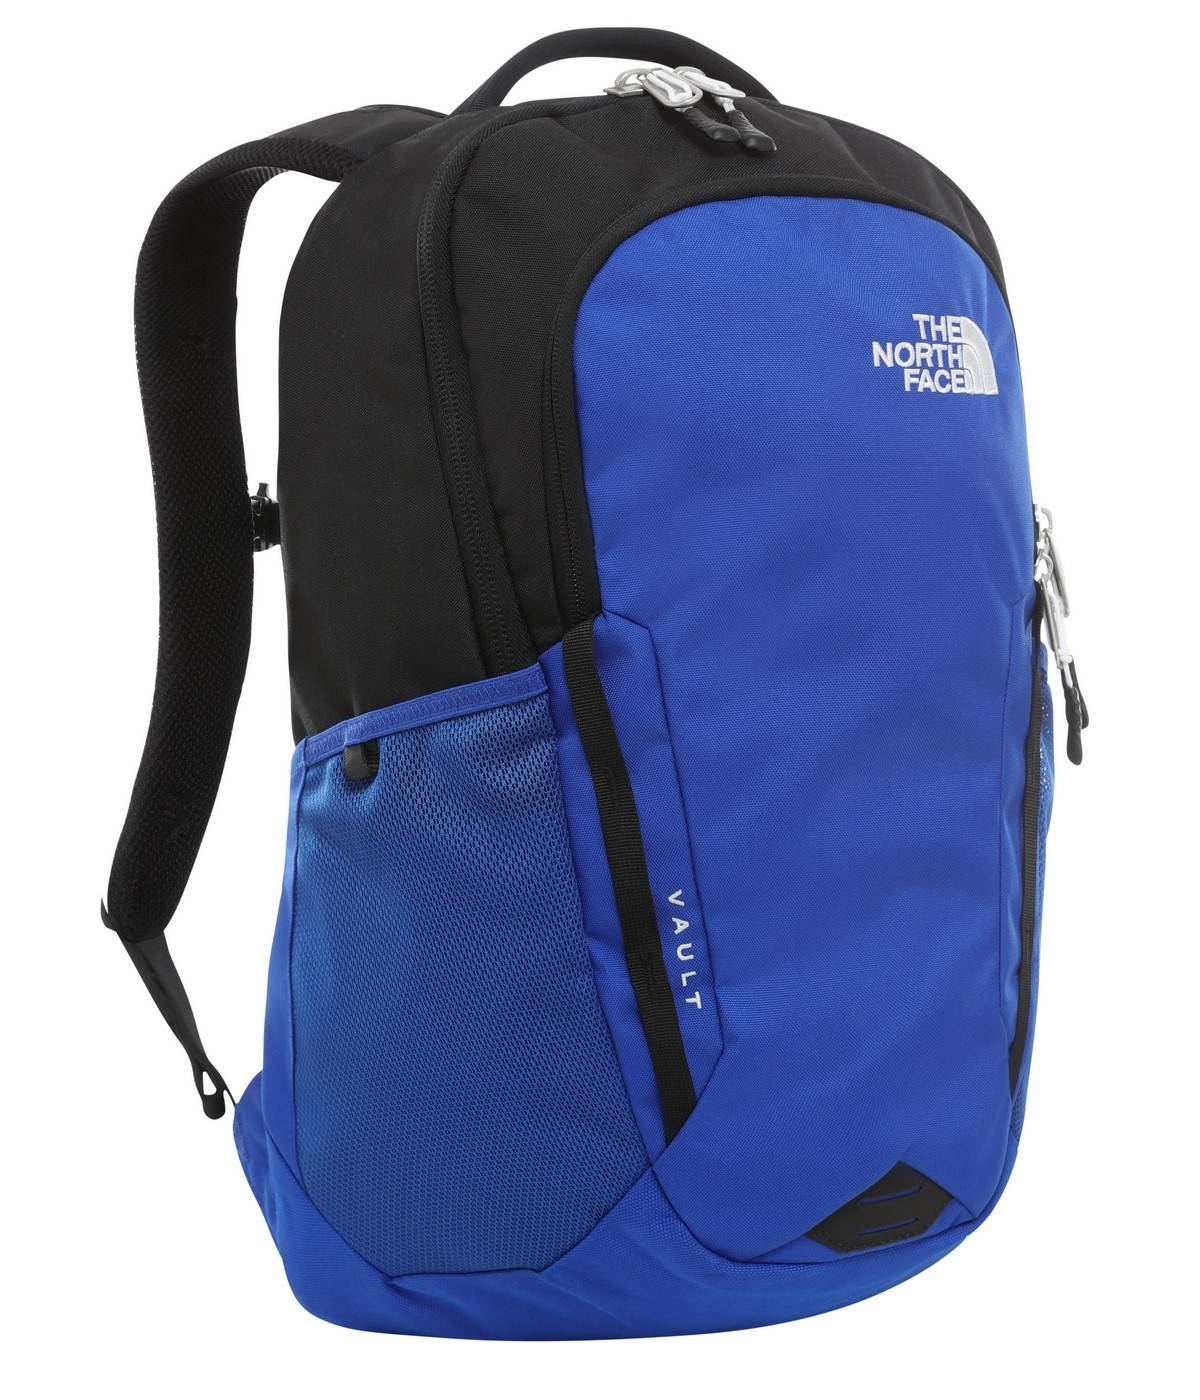 The North Face Zaino The North Face Vault Blu EF1